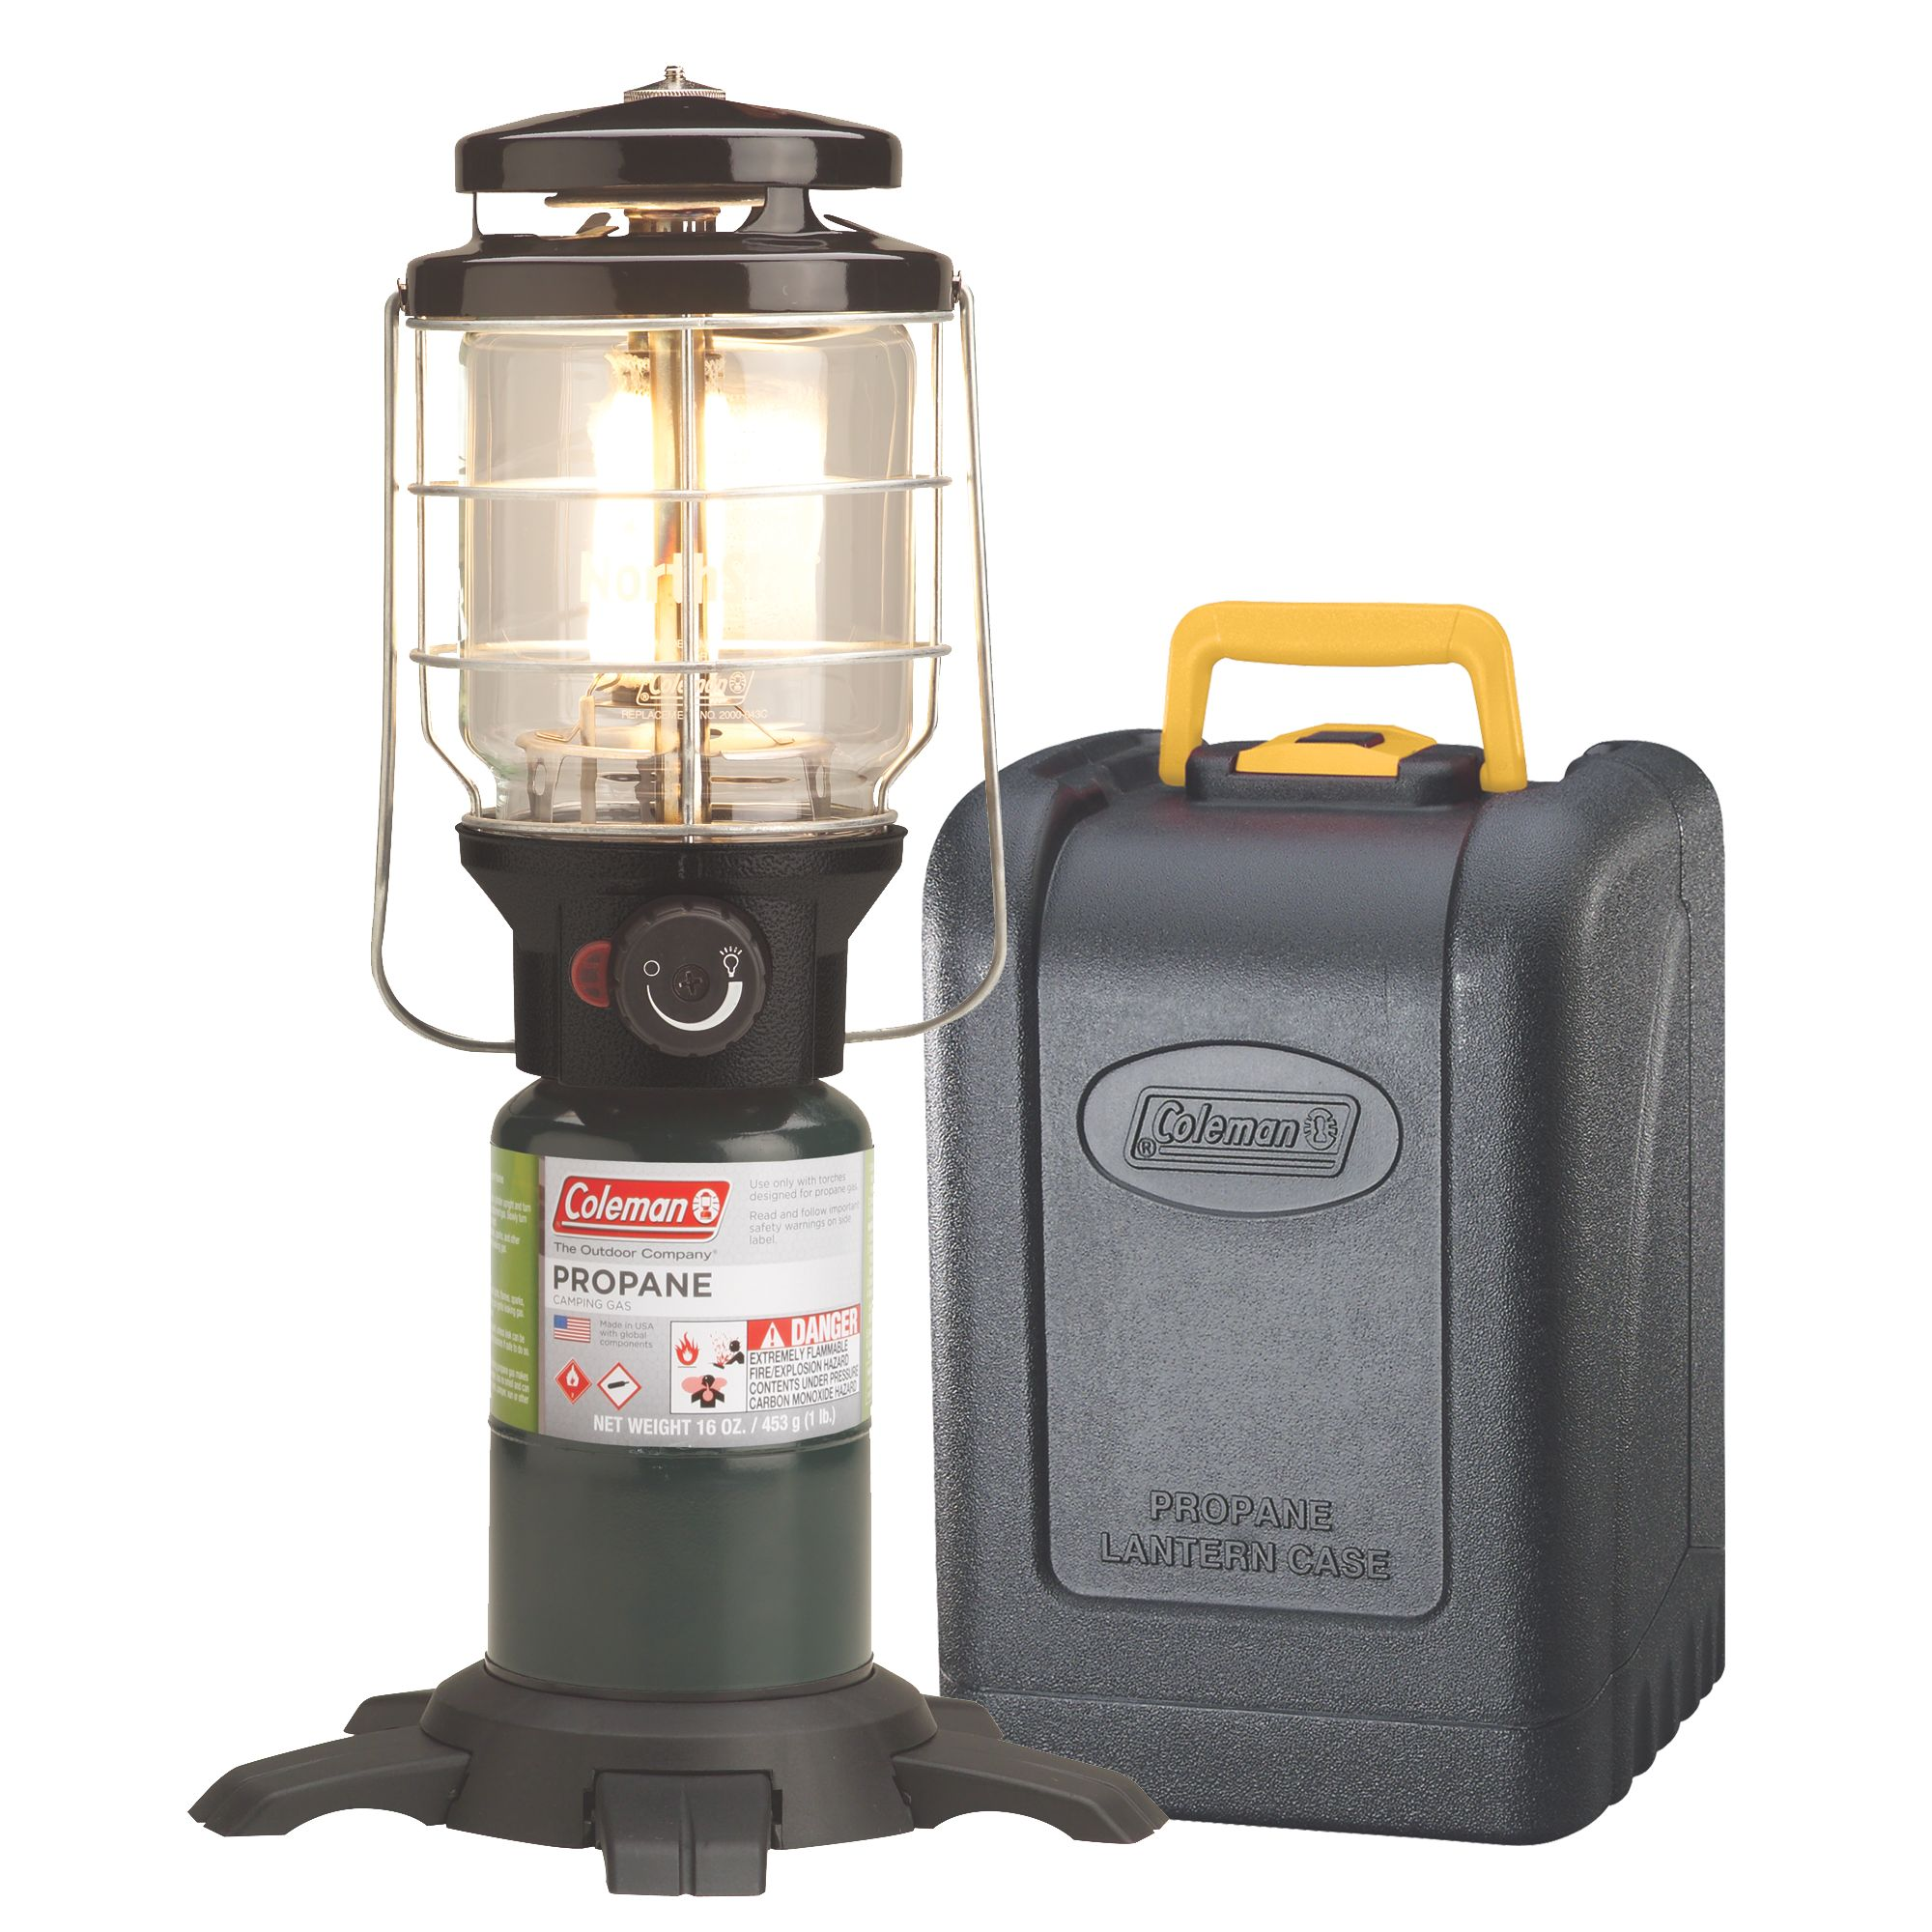 Northstar Propane Lantern With Case